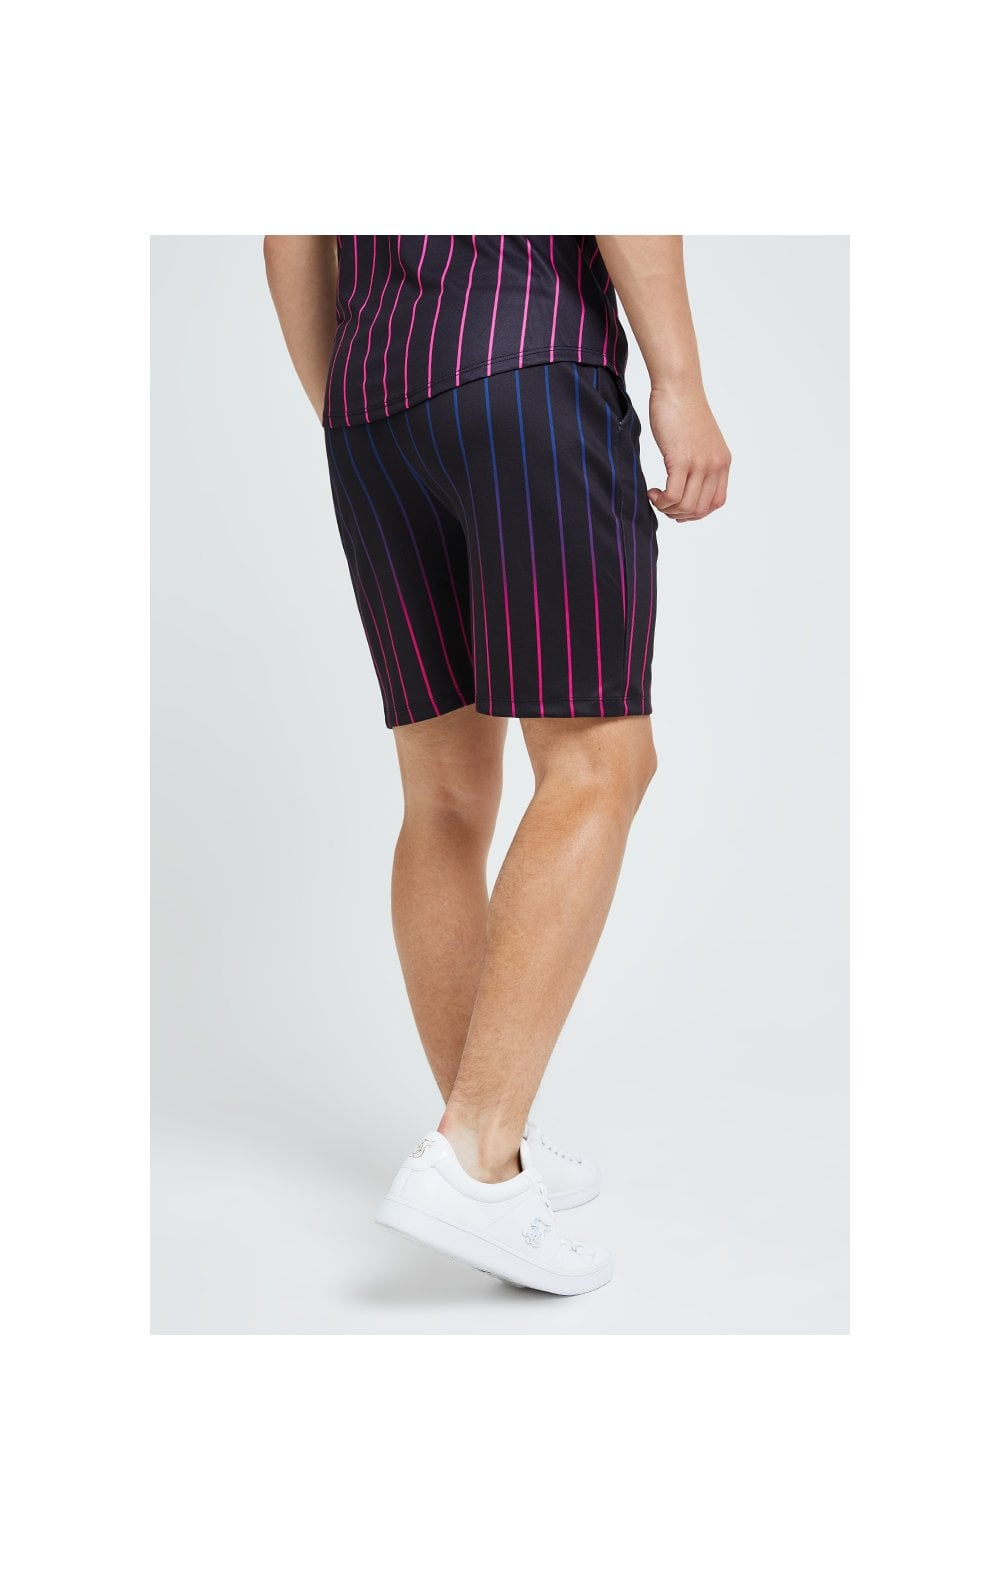 Illusive London Fade Stripe Shorts - Black (3)